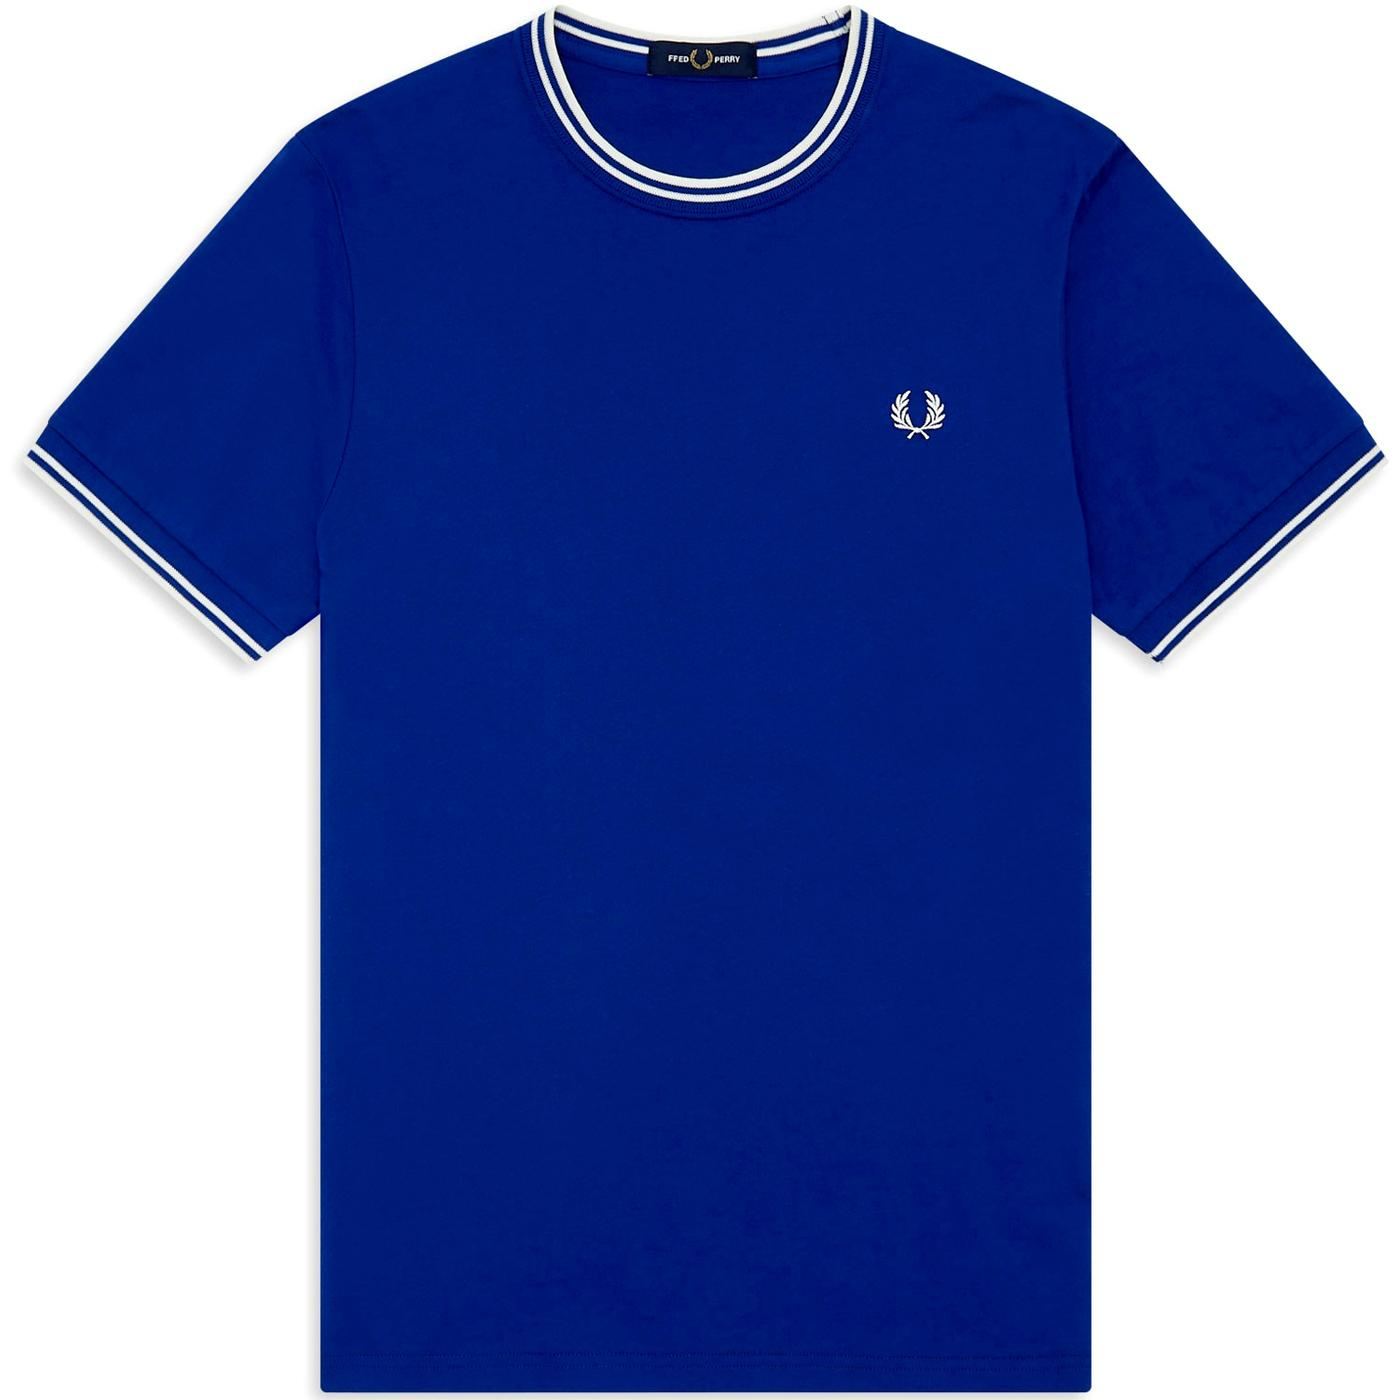 FRED PERRY M1588 Mod Twin Tipped T-Shirt - Cobalt